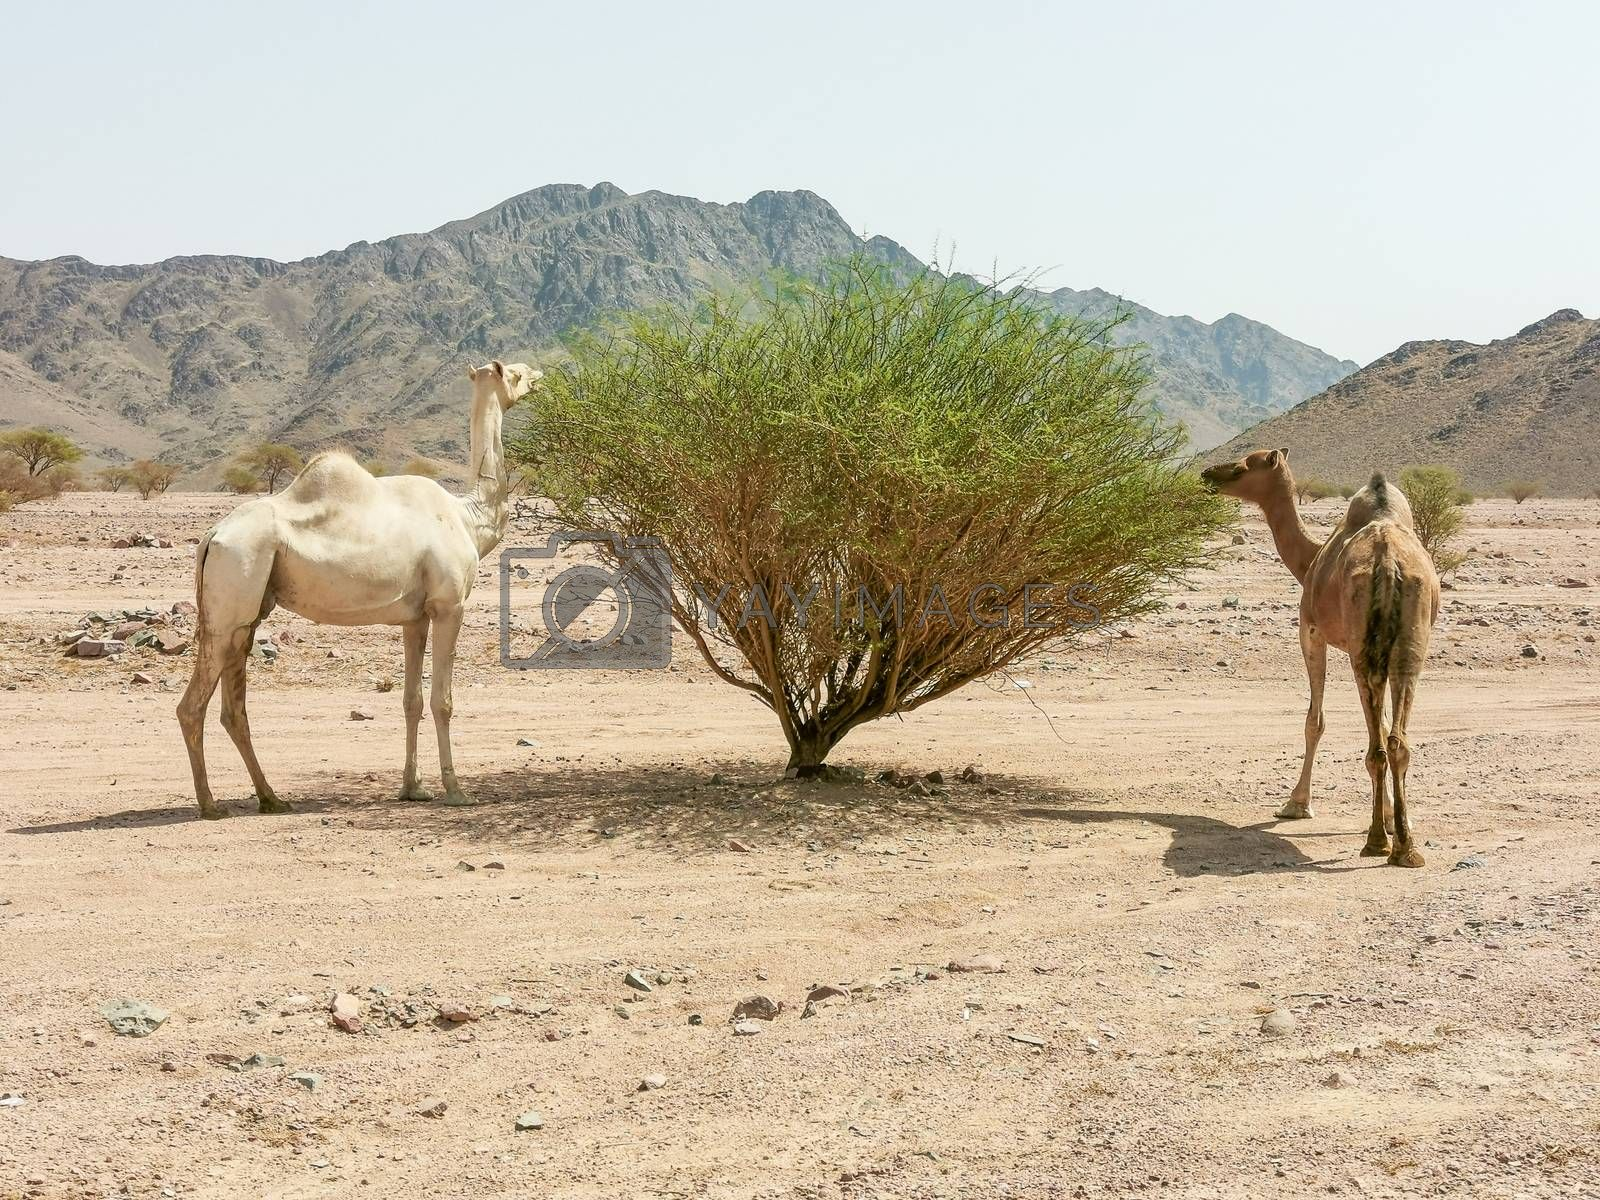 Desert landscape view with camels. selective focus